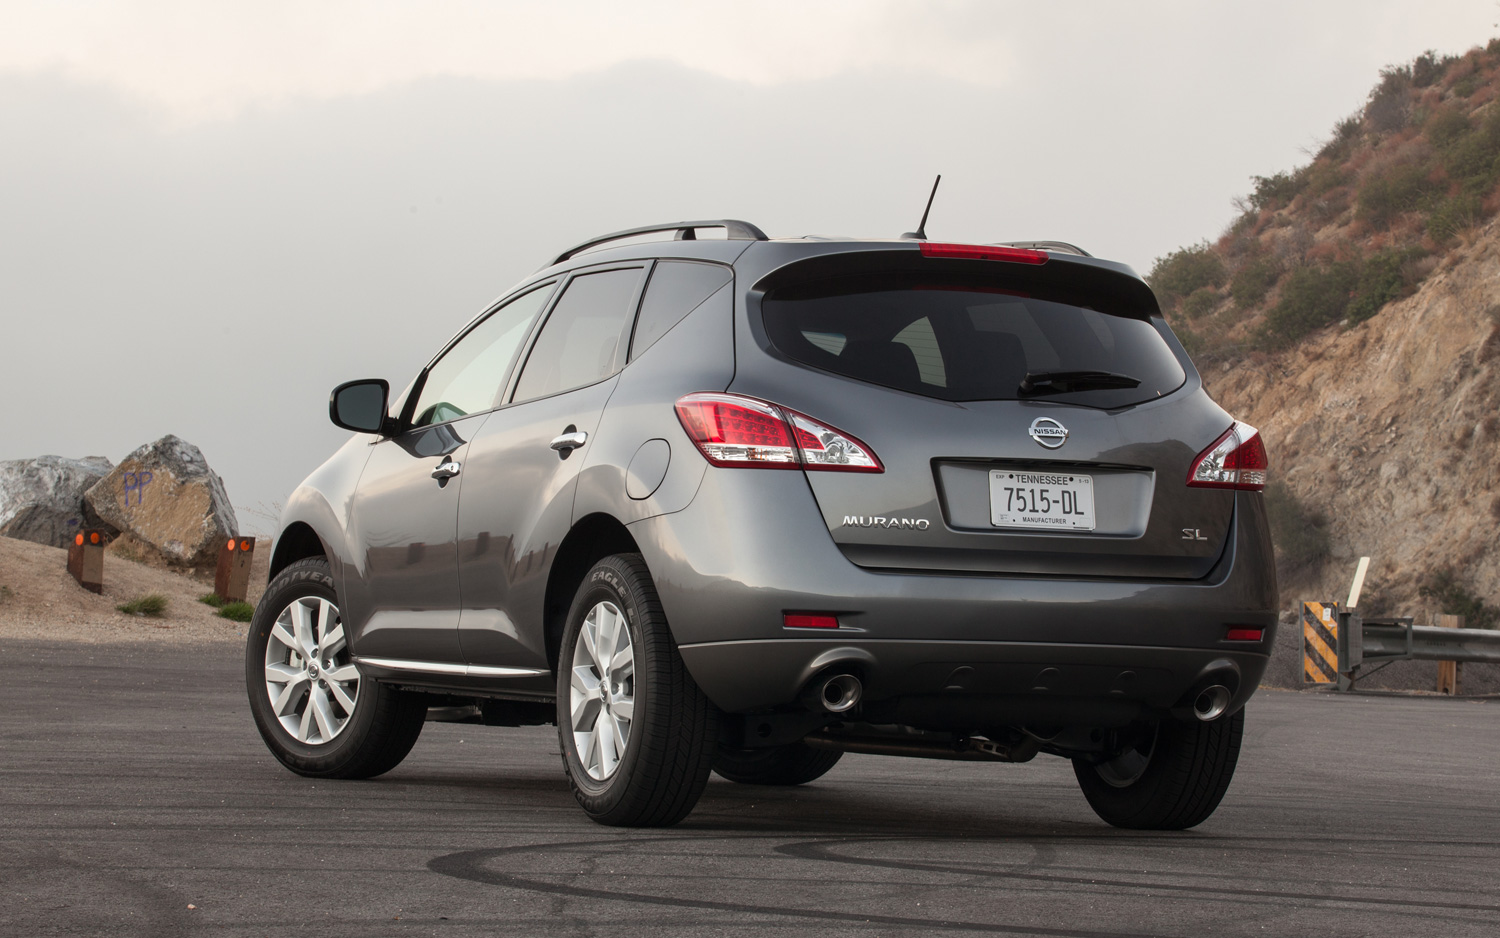 Nissan Has Announced Pricing On Its 2013 Murano Crossover Models, Along  With The Addition Of Some Color And Equipment Changes.